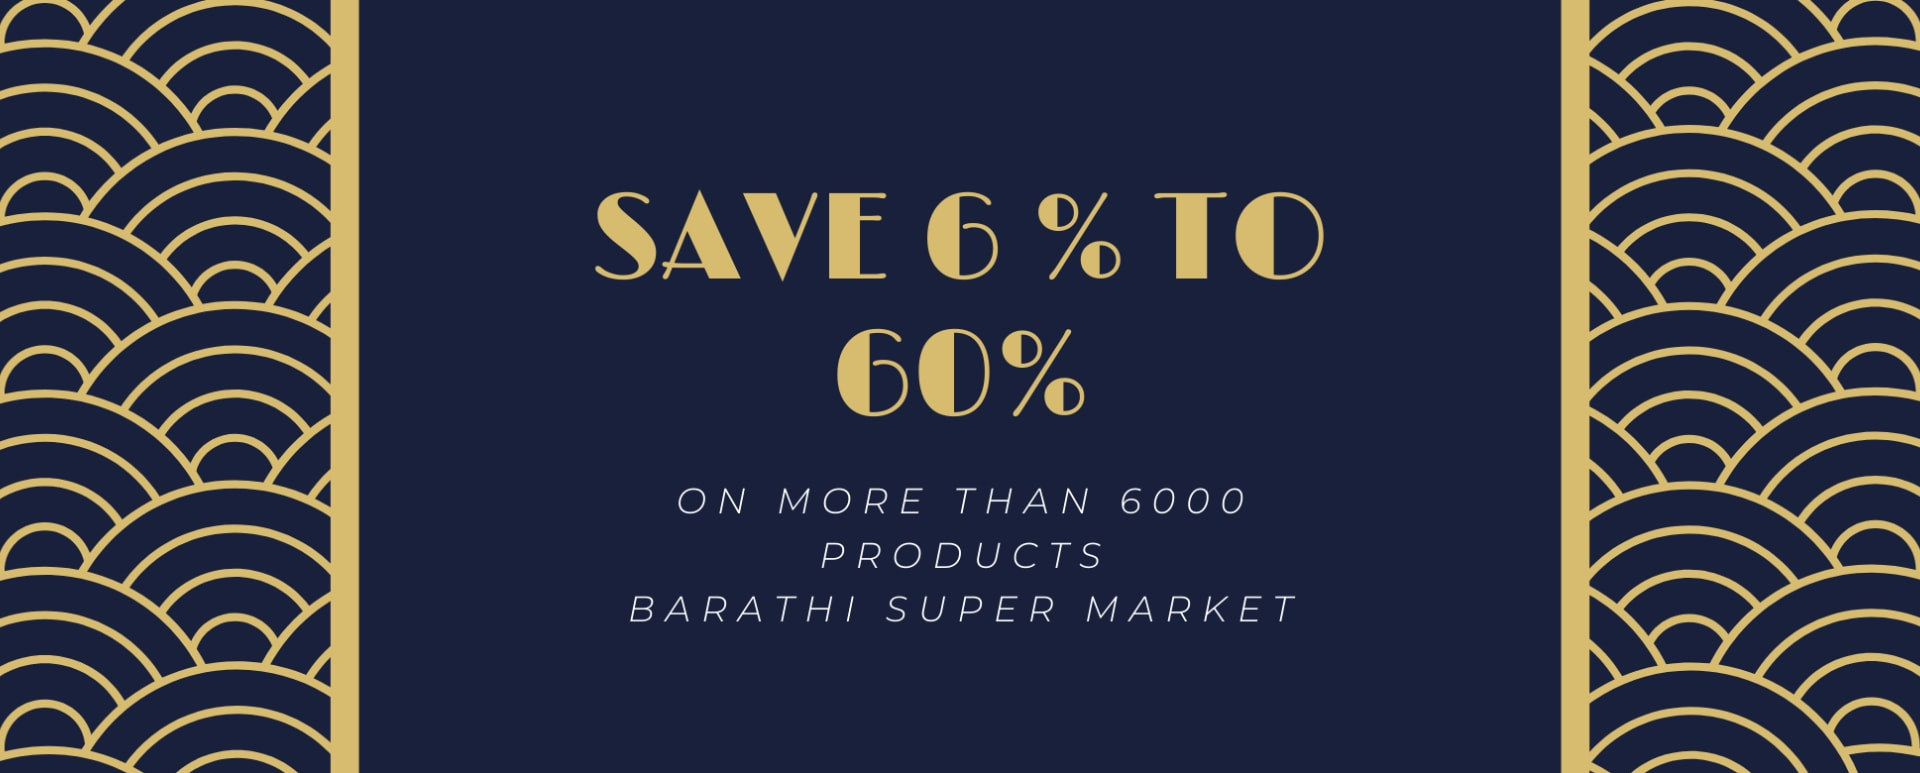 Barathi Super Market - Grocery Store, Stationery Shop and Housekeeping Product Supplier in Salem